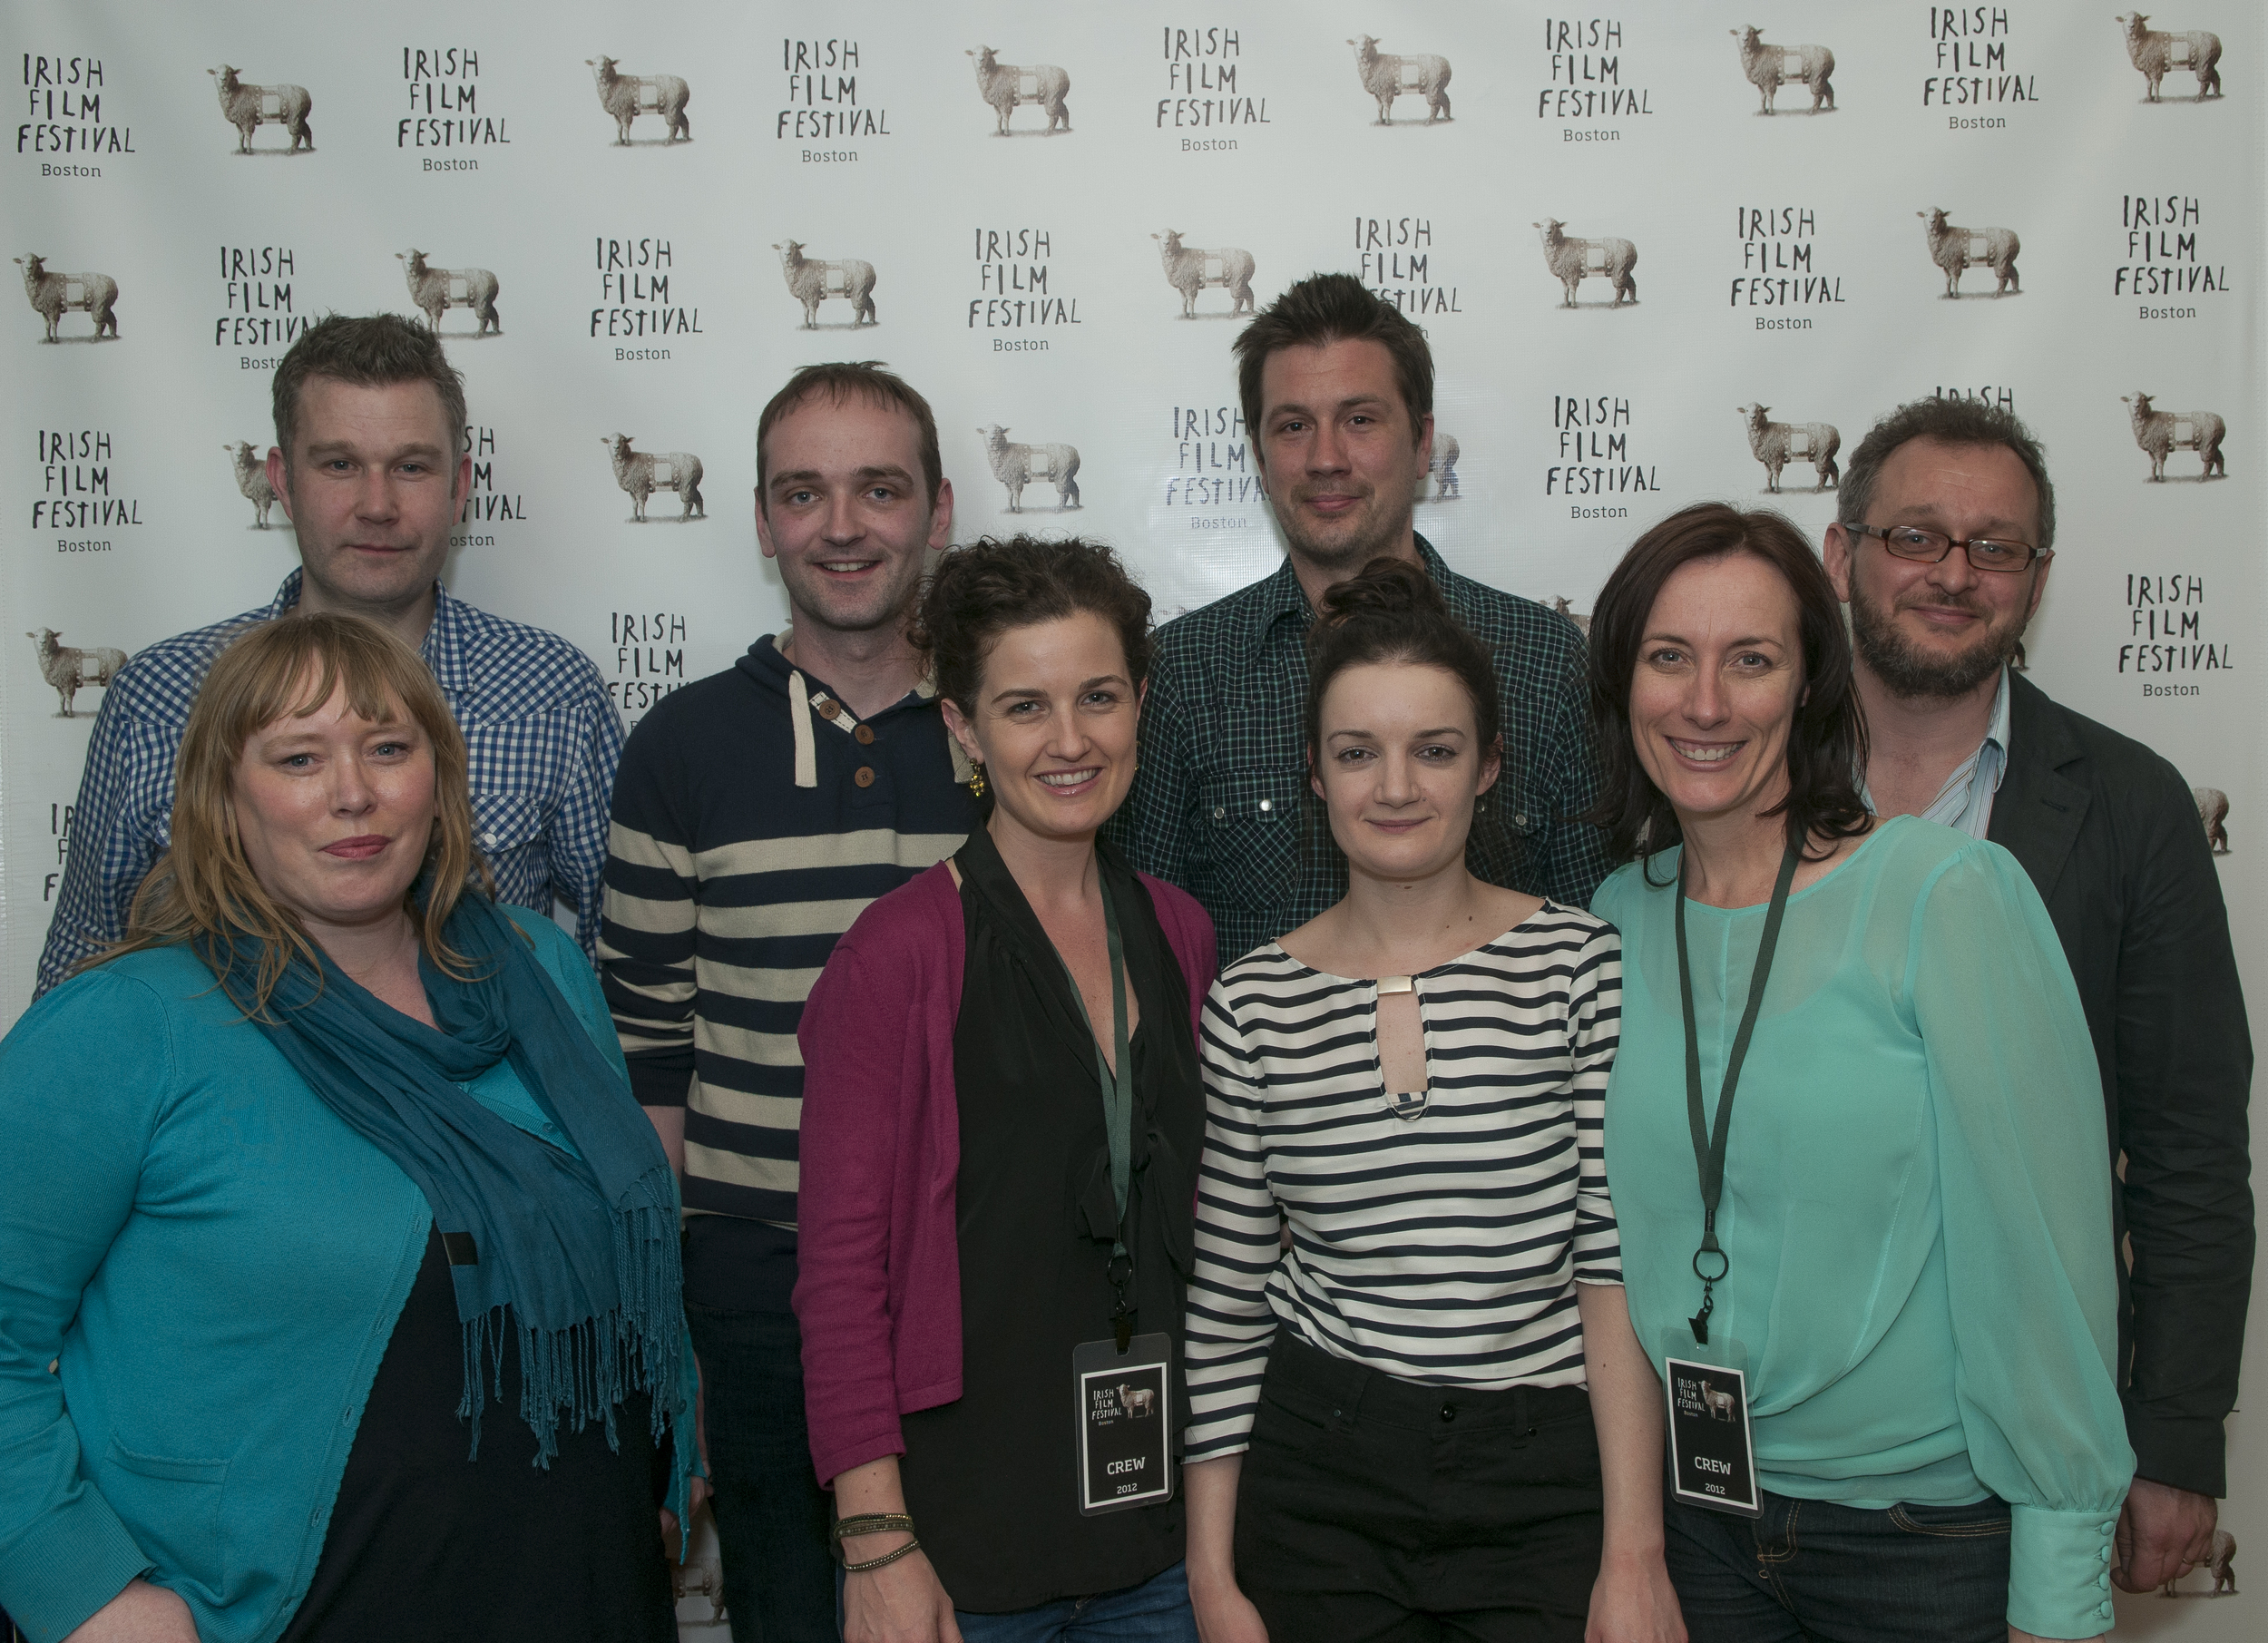 20120323-Irish Film Festival Behold the Lamb-137.jpg